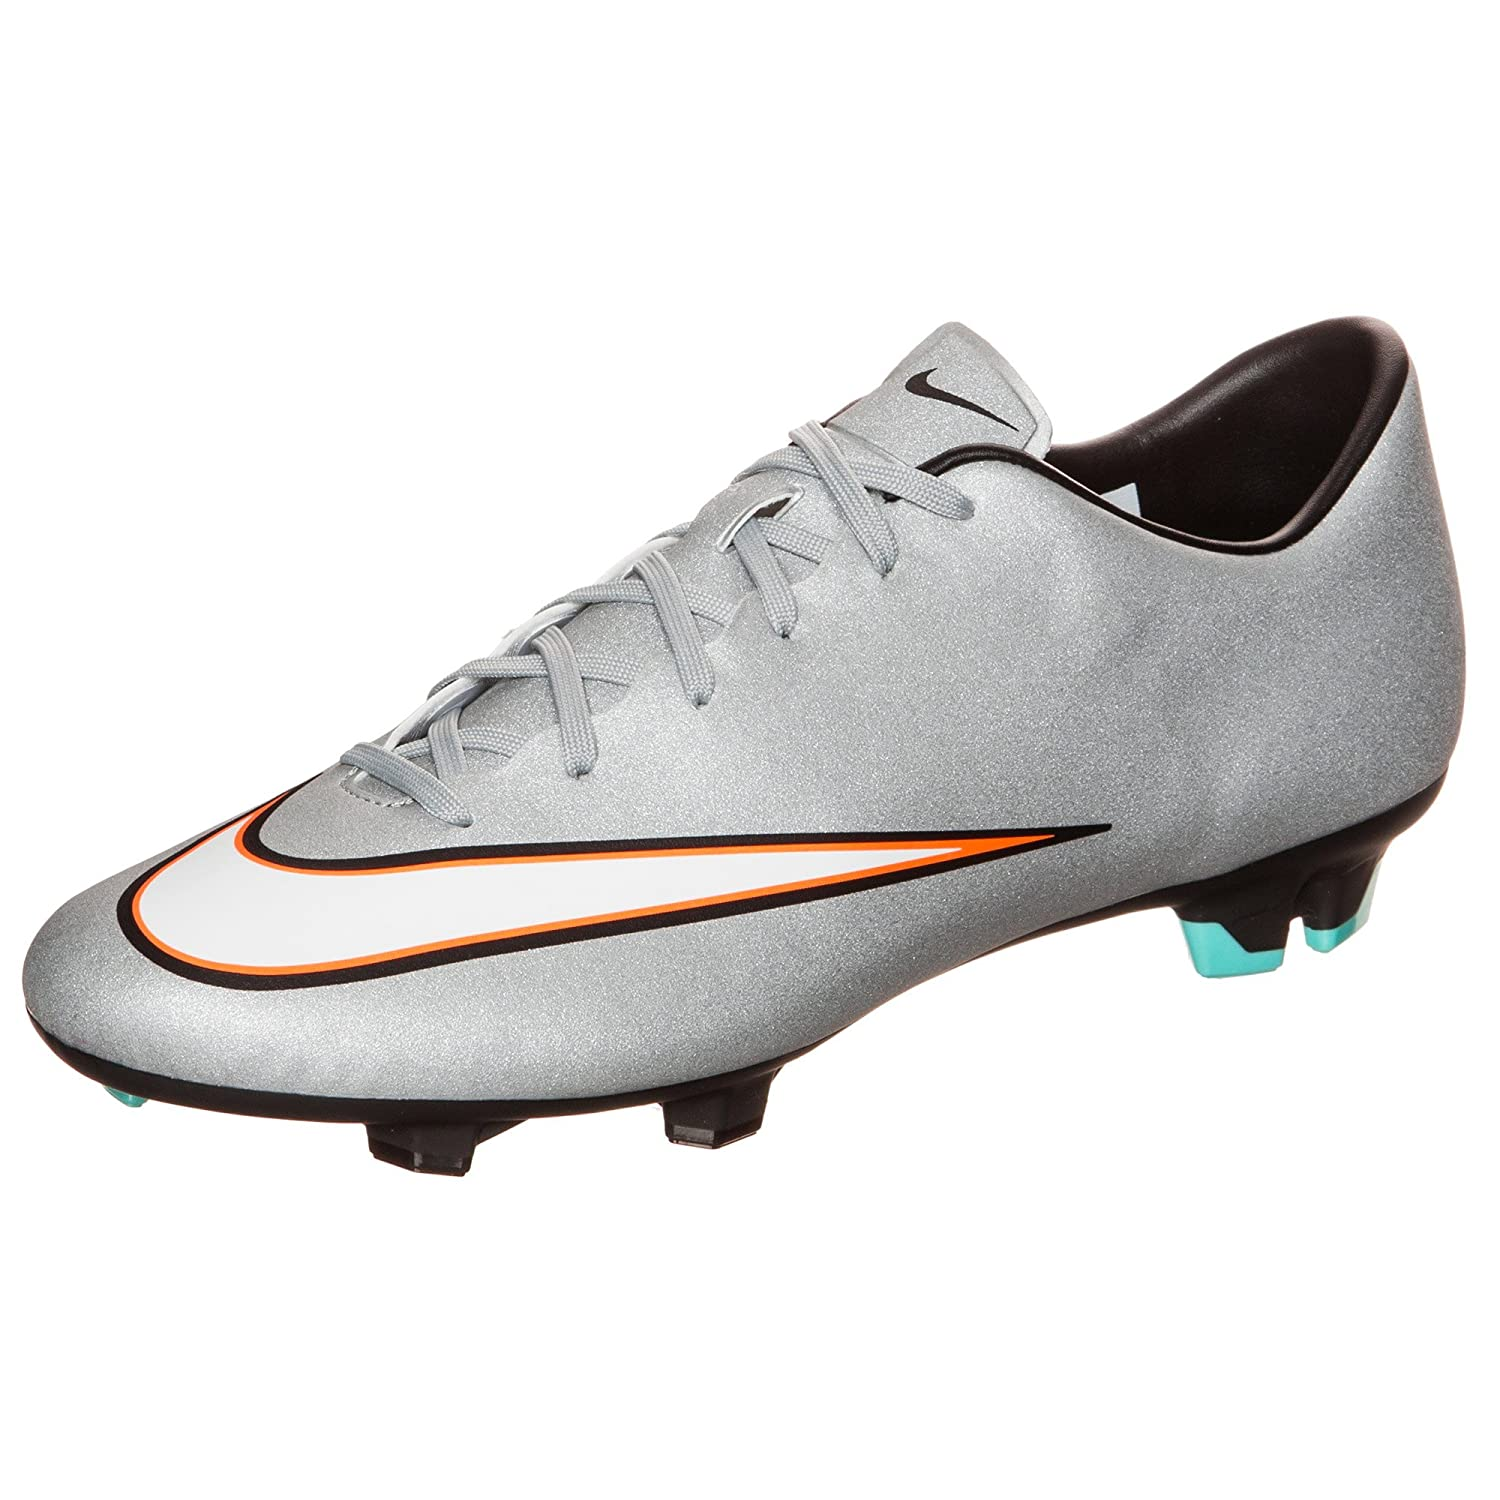 outlet store 5696f 9e45b Nike Mercurial Victory V CR7 FG Soccer Cleats - Metallic ...